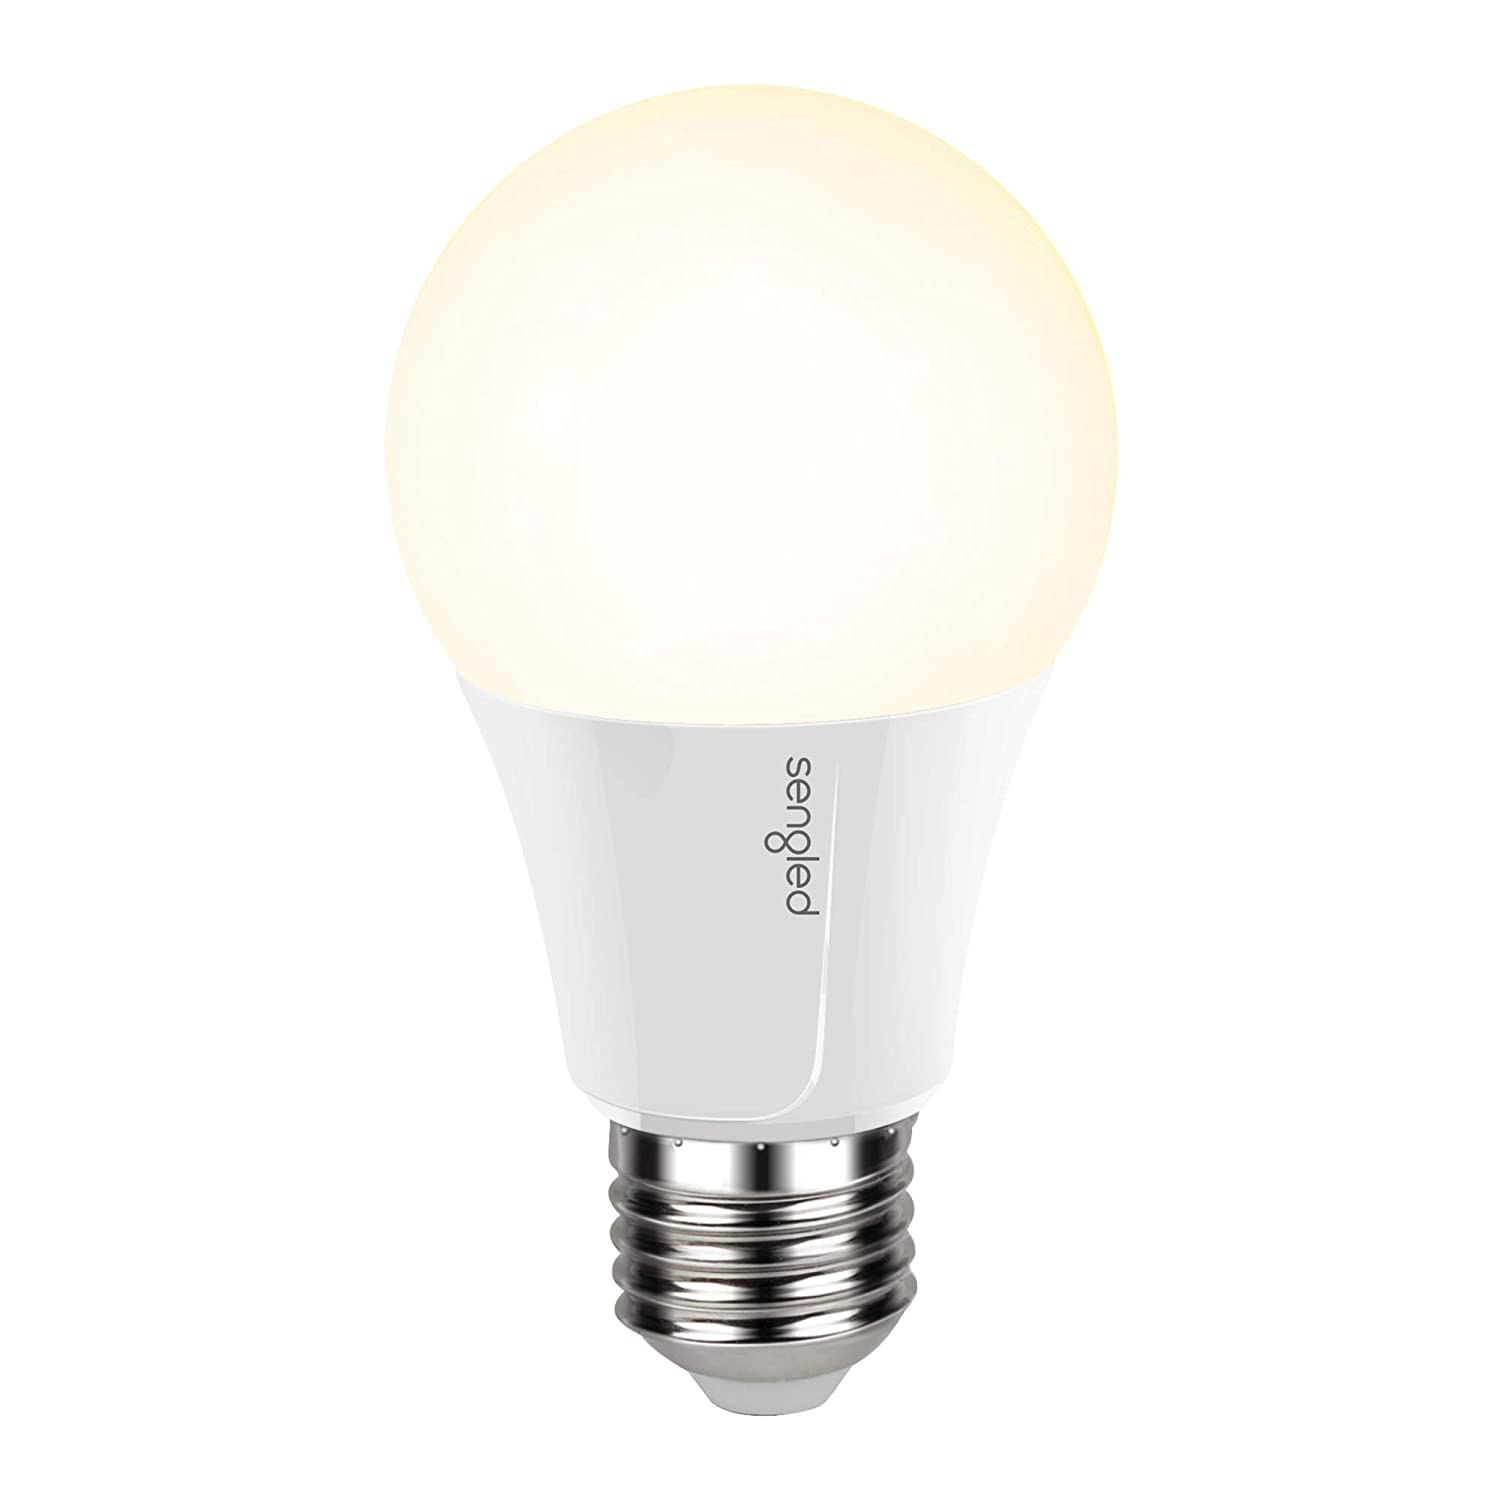 Sengled Smart Wi-Fi LED Soft White A19 Bulb, No Hub Required, 2700K, 60W Equivalent, Works with Alexa & Google Assistant, 1 Pack